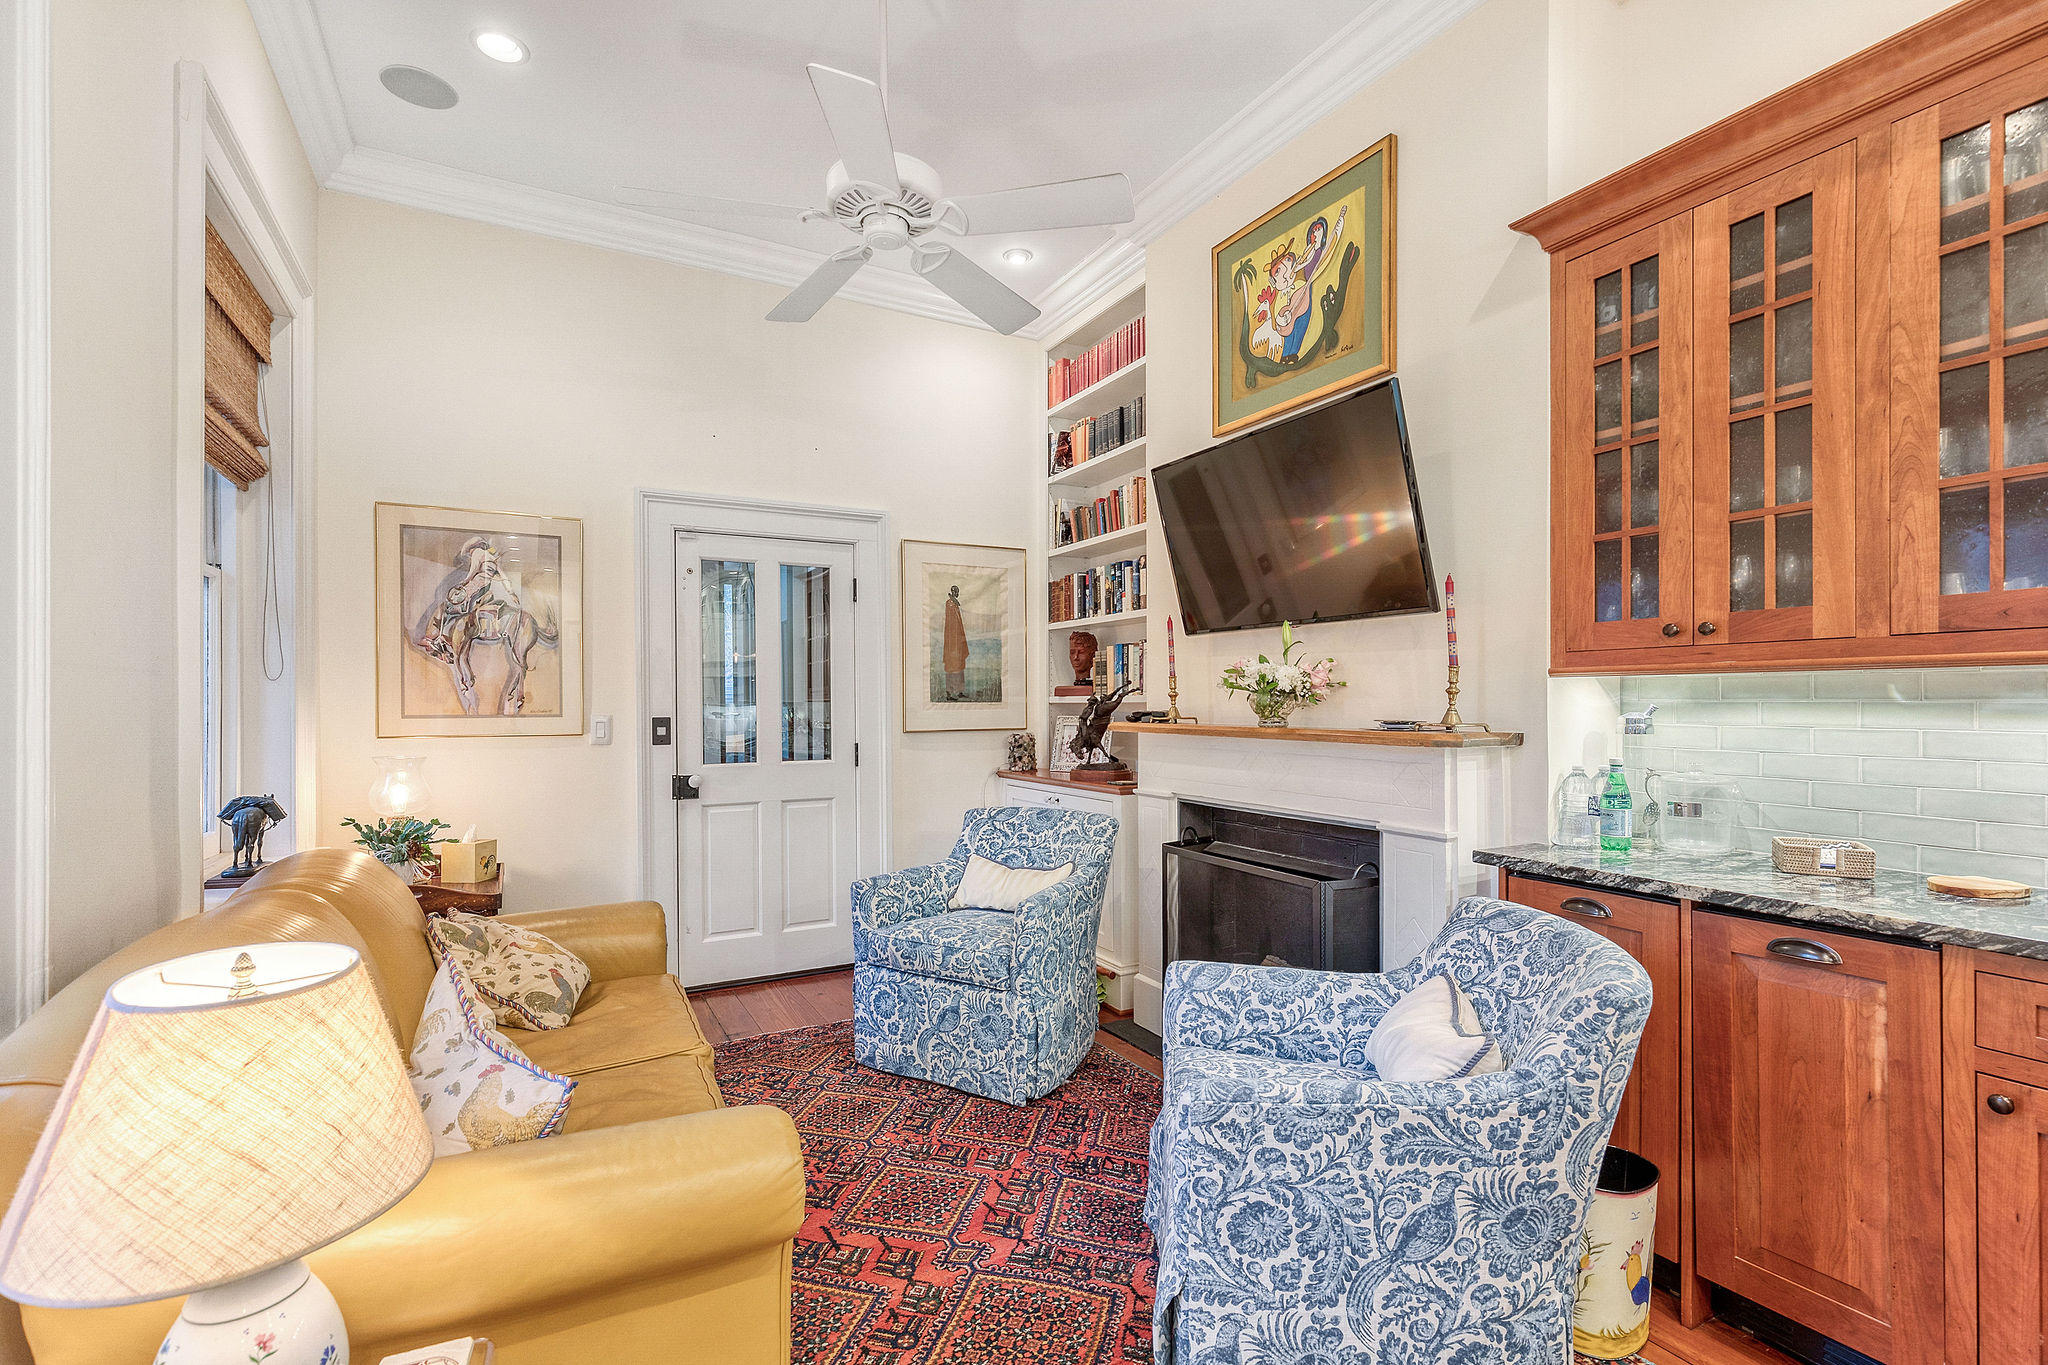 South of Broad Homes For Sale - 53 Church, Charleston, SC - 12